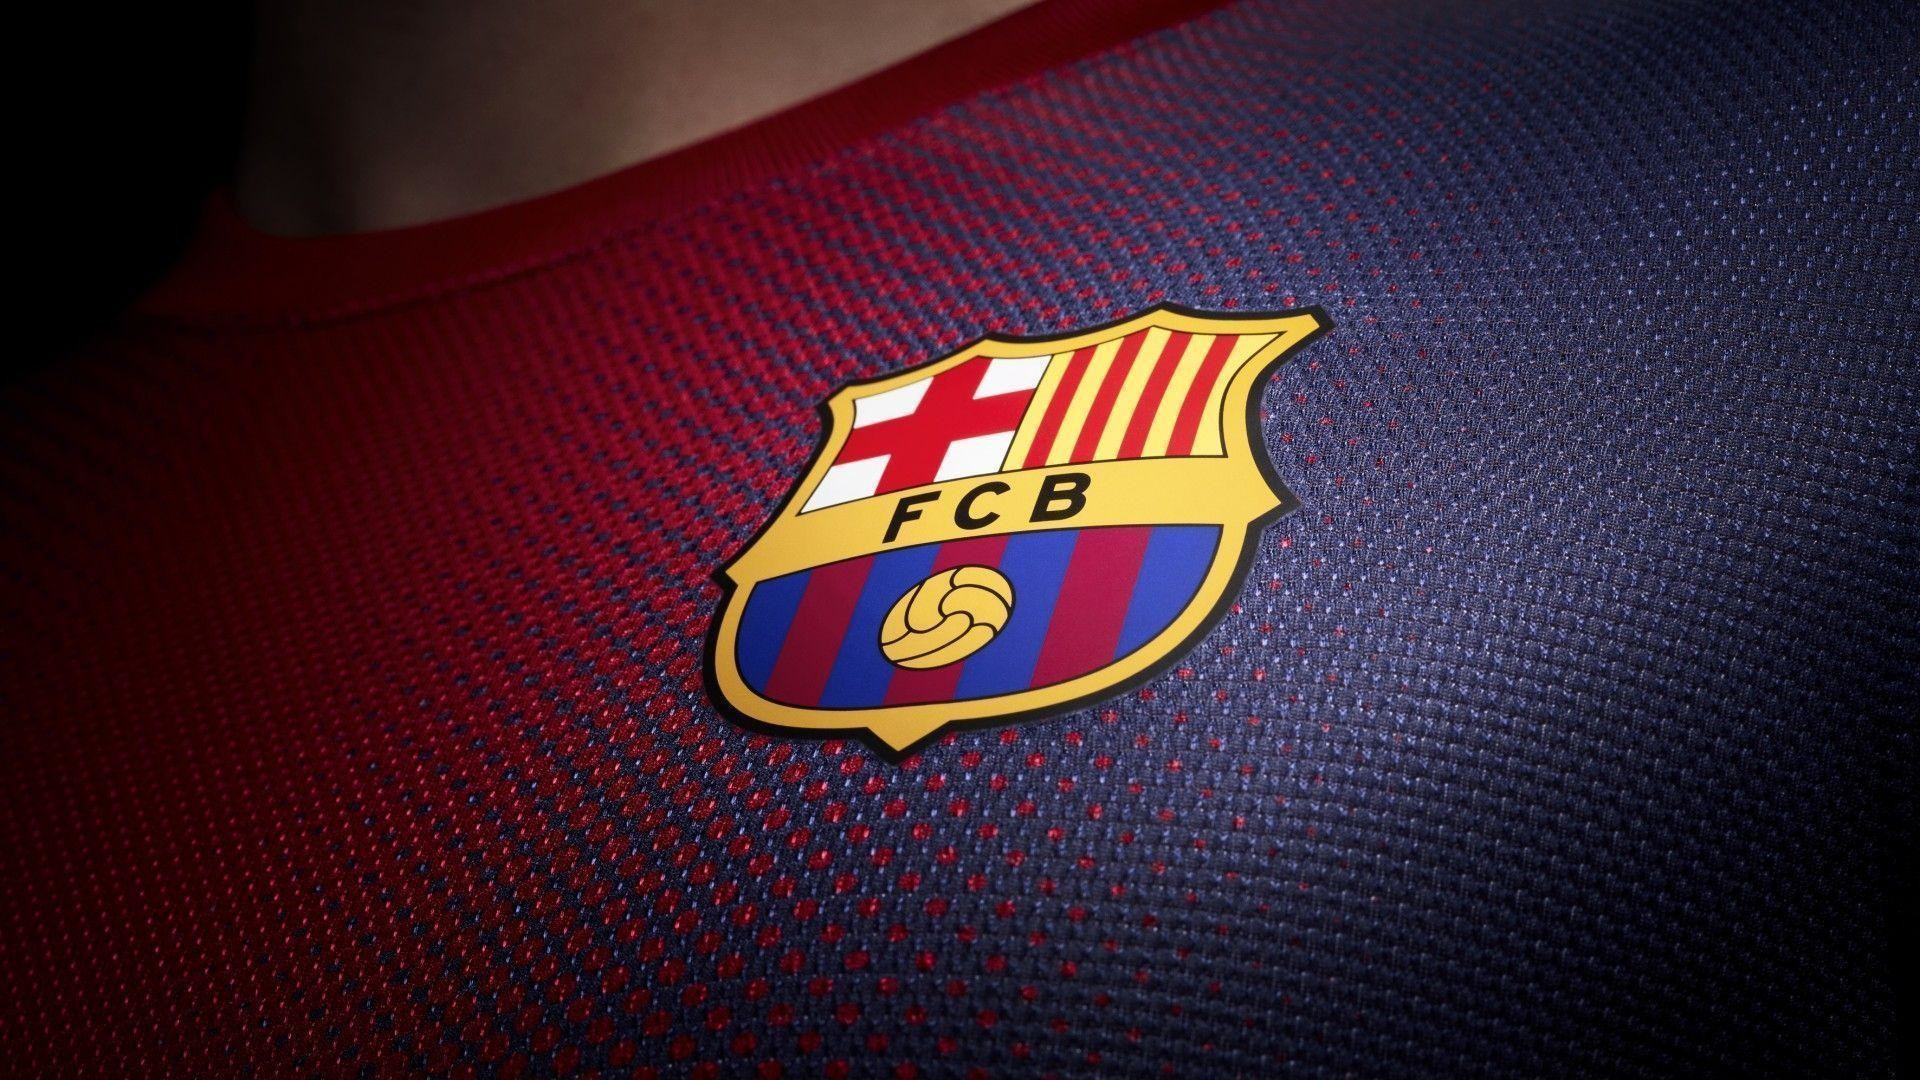 fc barcelona wallpapers 81 pictures fc barcelona wallpapers 81 pictures